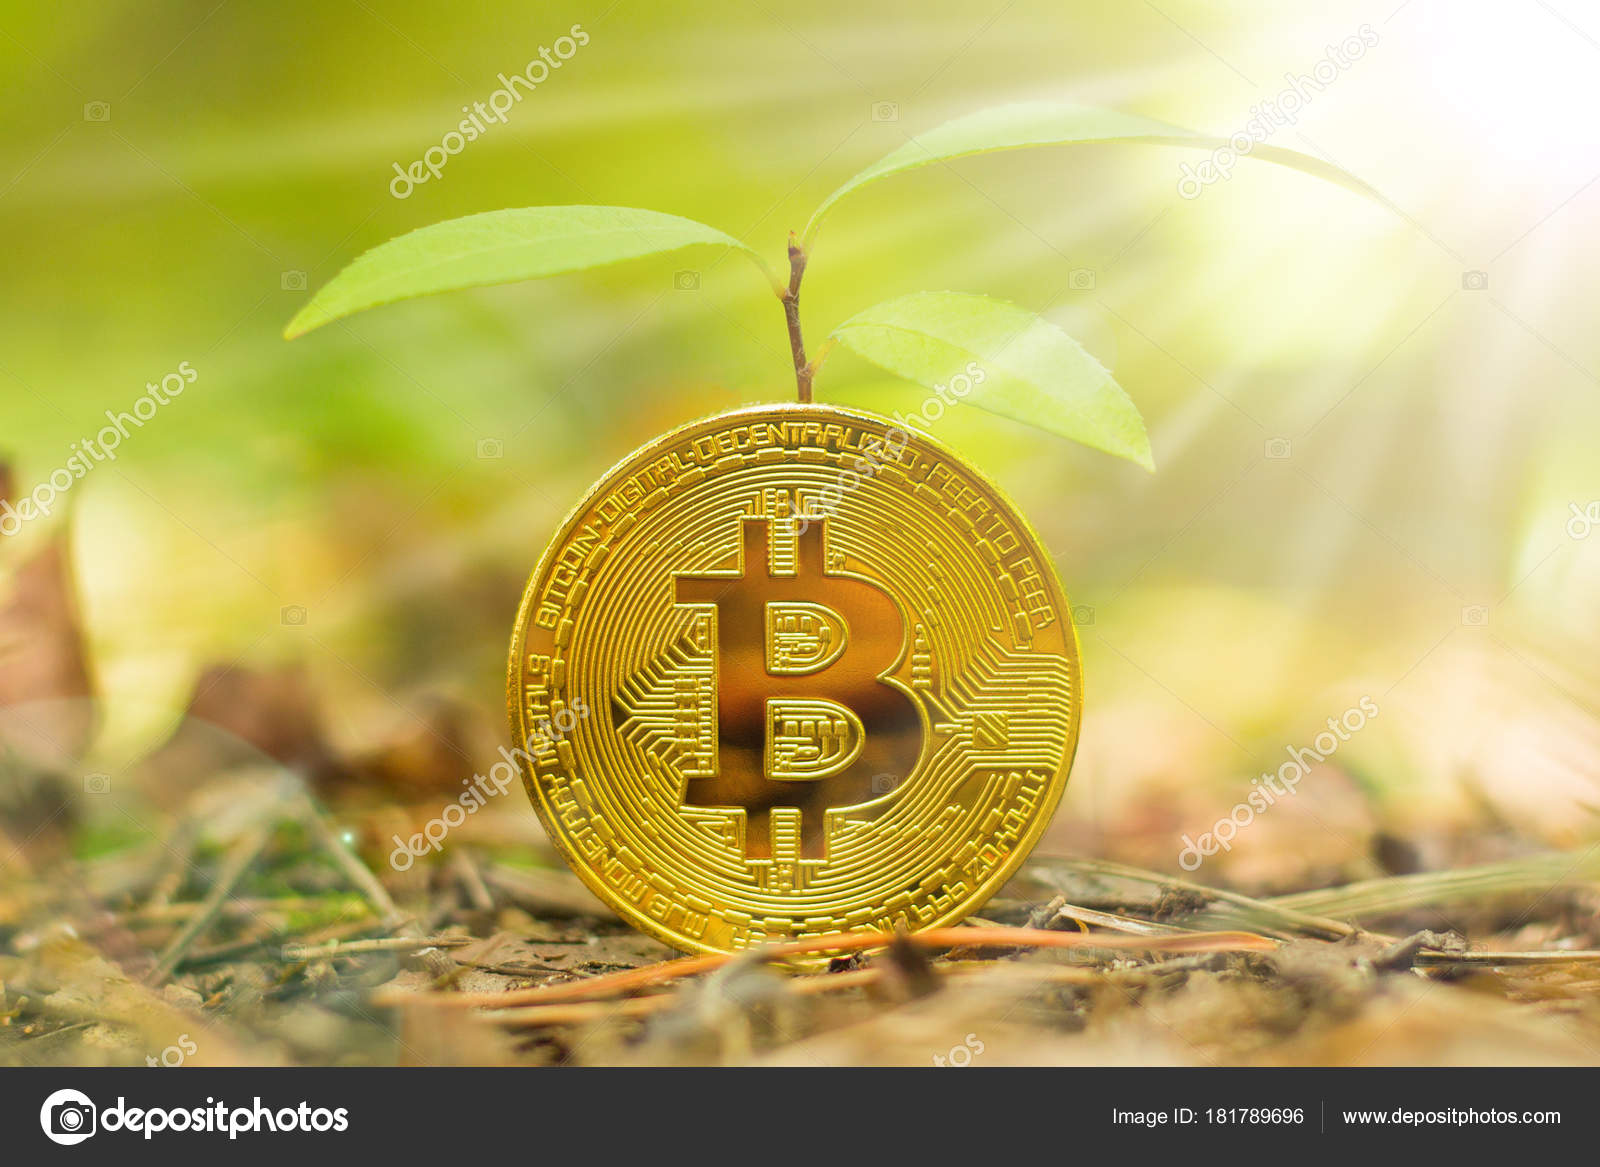 where can i buy sprouts cryptocurrency